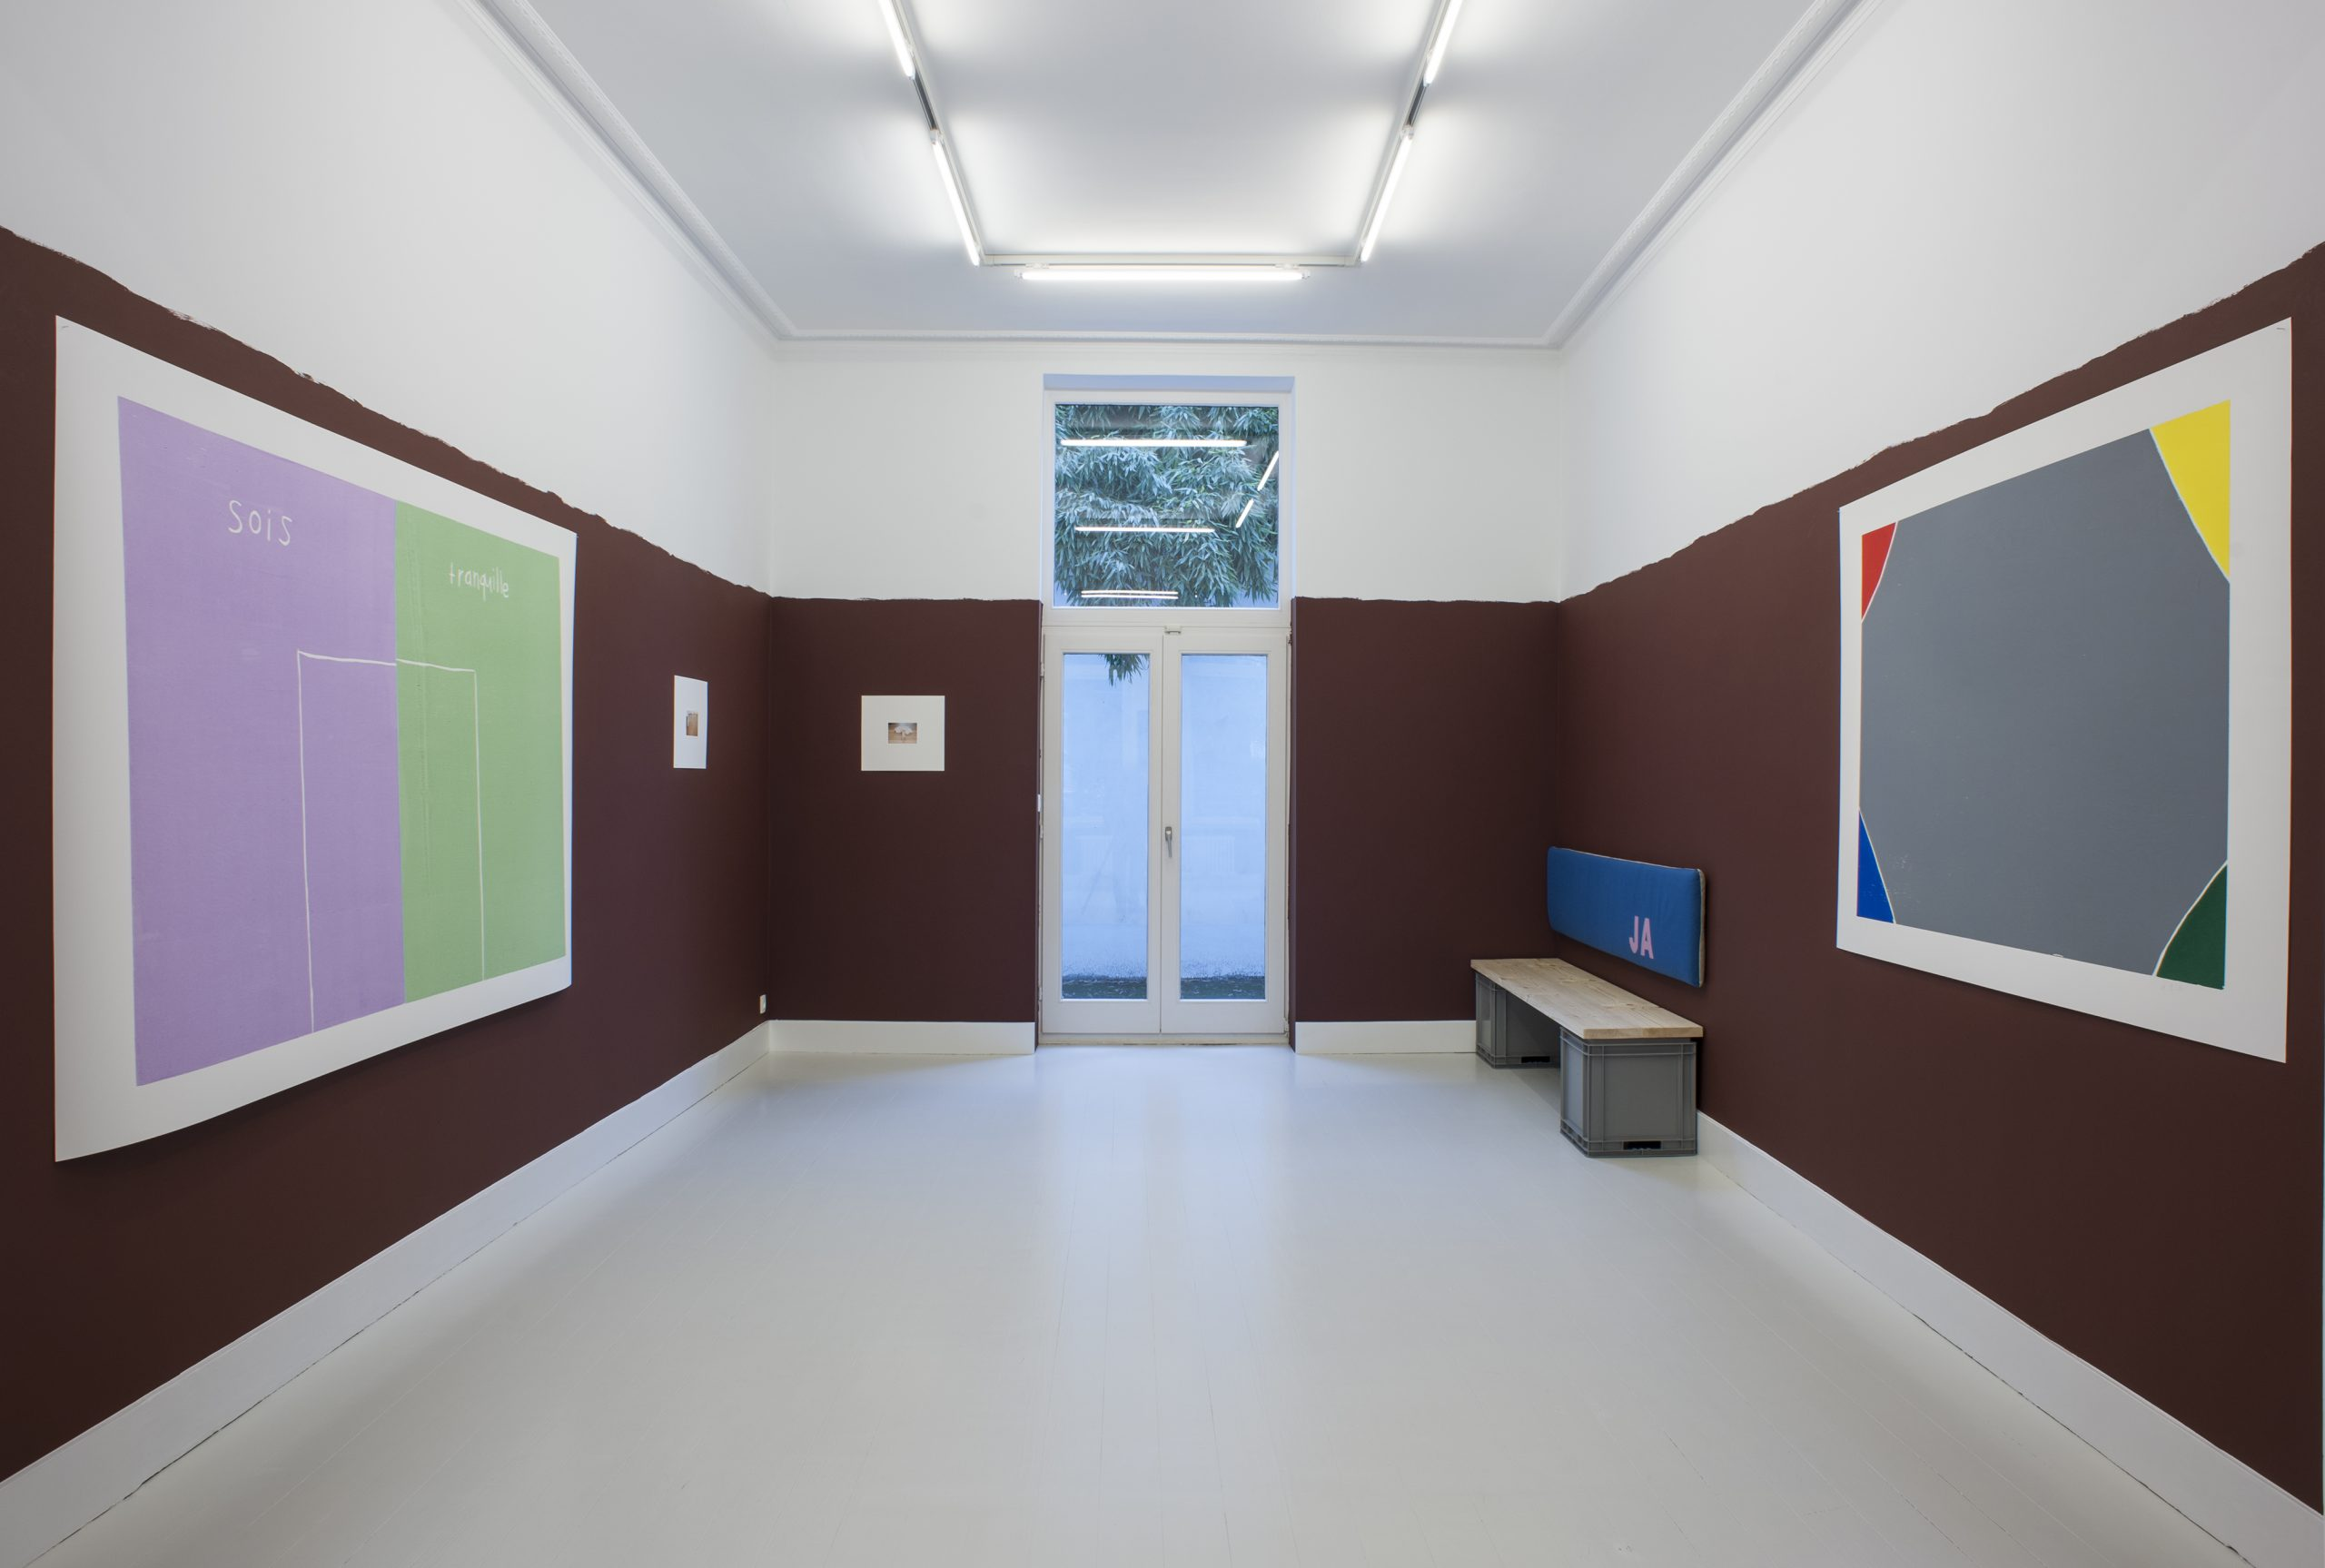 Andrea Büttner, Manon de Boer, installation view at Jan Mot 2018